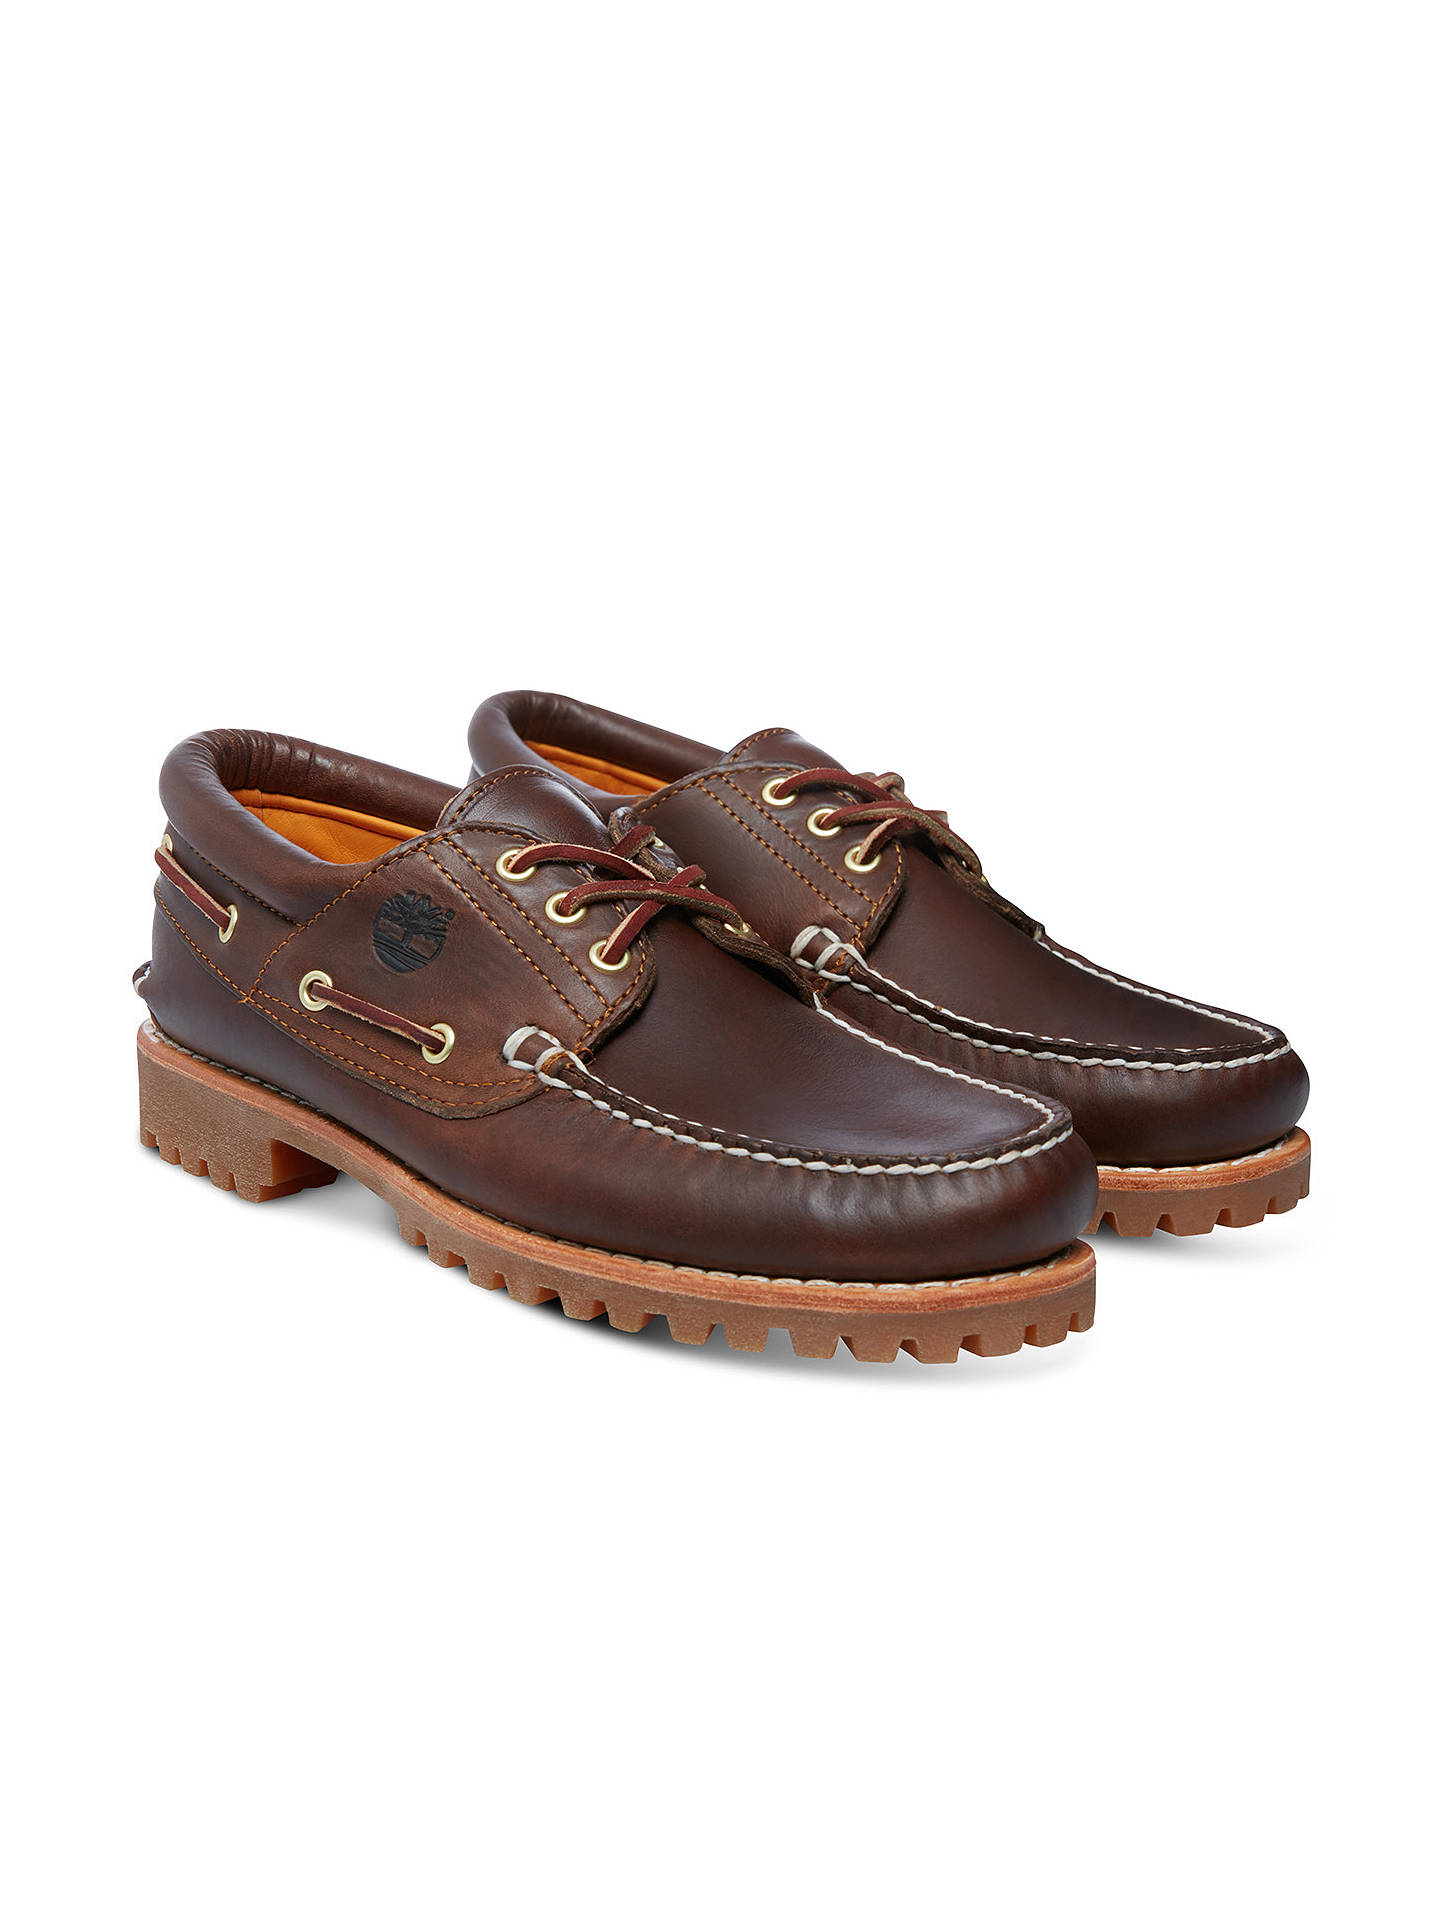 ... BuyTimberland Handsewn Boat Shoes, Brown, 7 Online at johnlewis.com